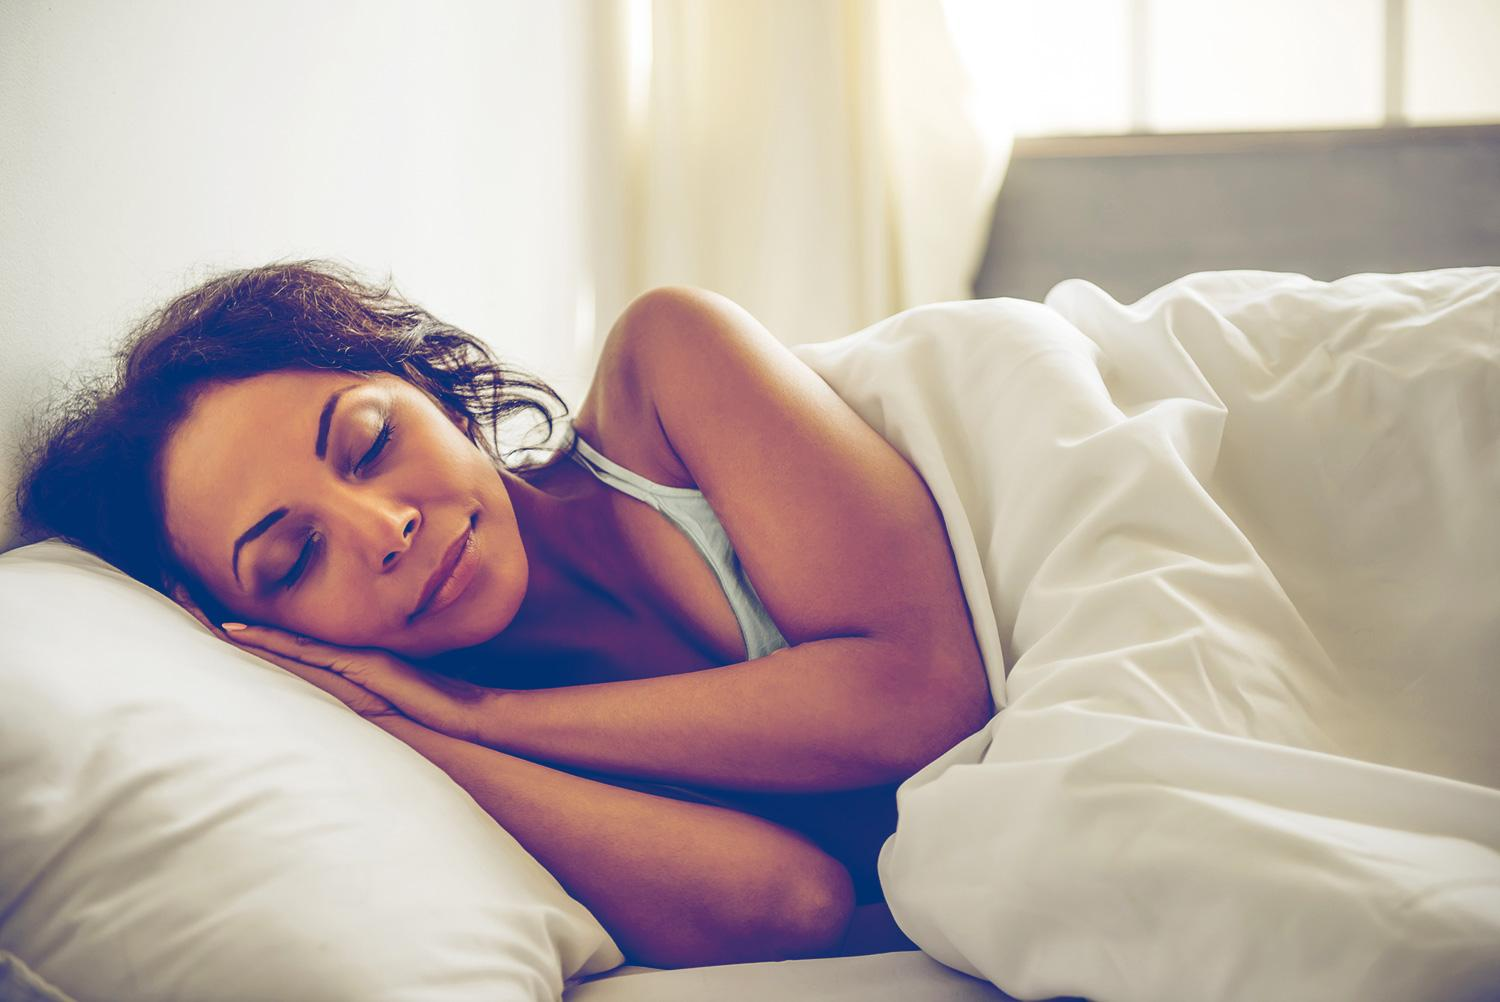 SHUTi, an online program that uses cognitive behavioral therapy to help people with insomnia find relief, helped 70 percent of patients, according to a new study.